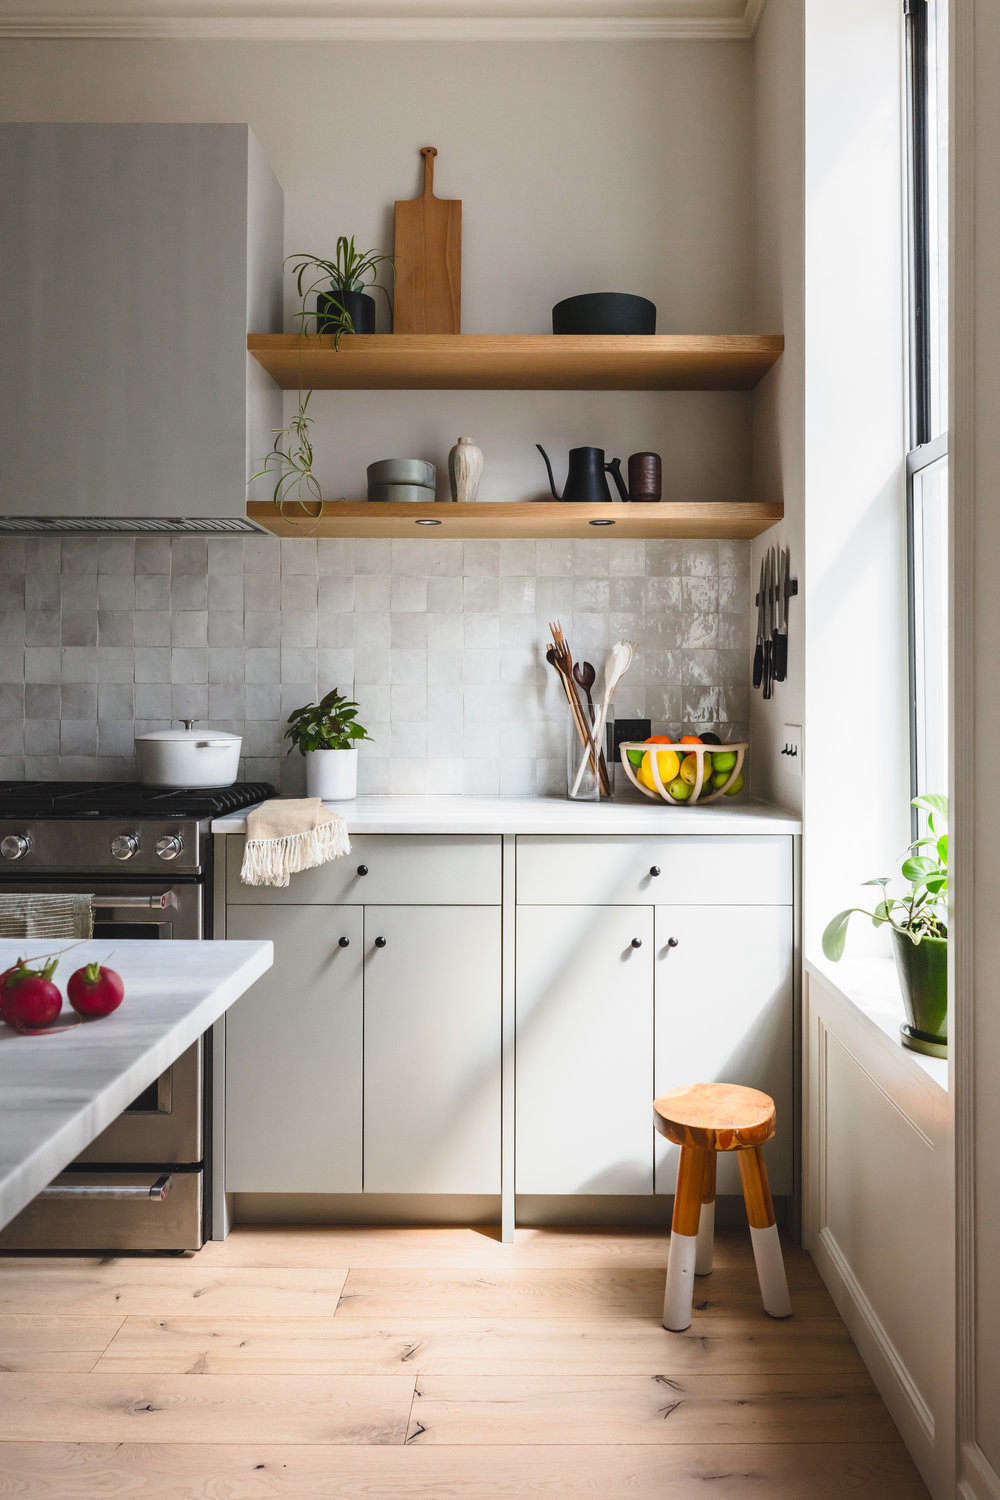 The counter and open shelves are reserved for a few kitchen tools, such as cutting boards and wooden spoons by Allison Samuels of Two Trees Studio and a Terracotta Fruit Bowl by Virginia Sins. Dishes and the couples&#8